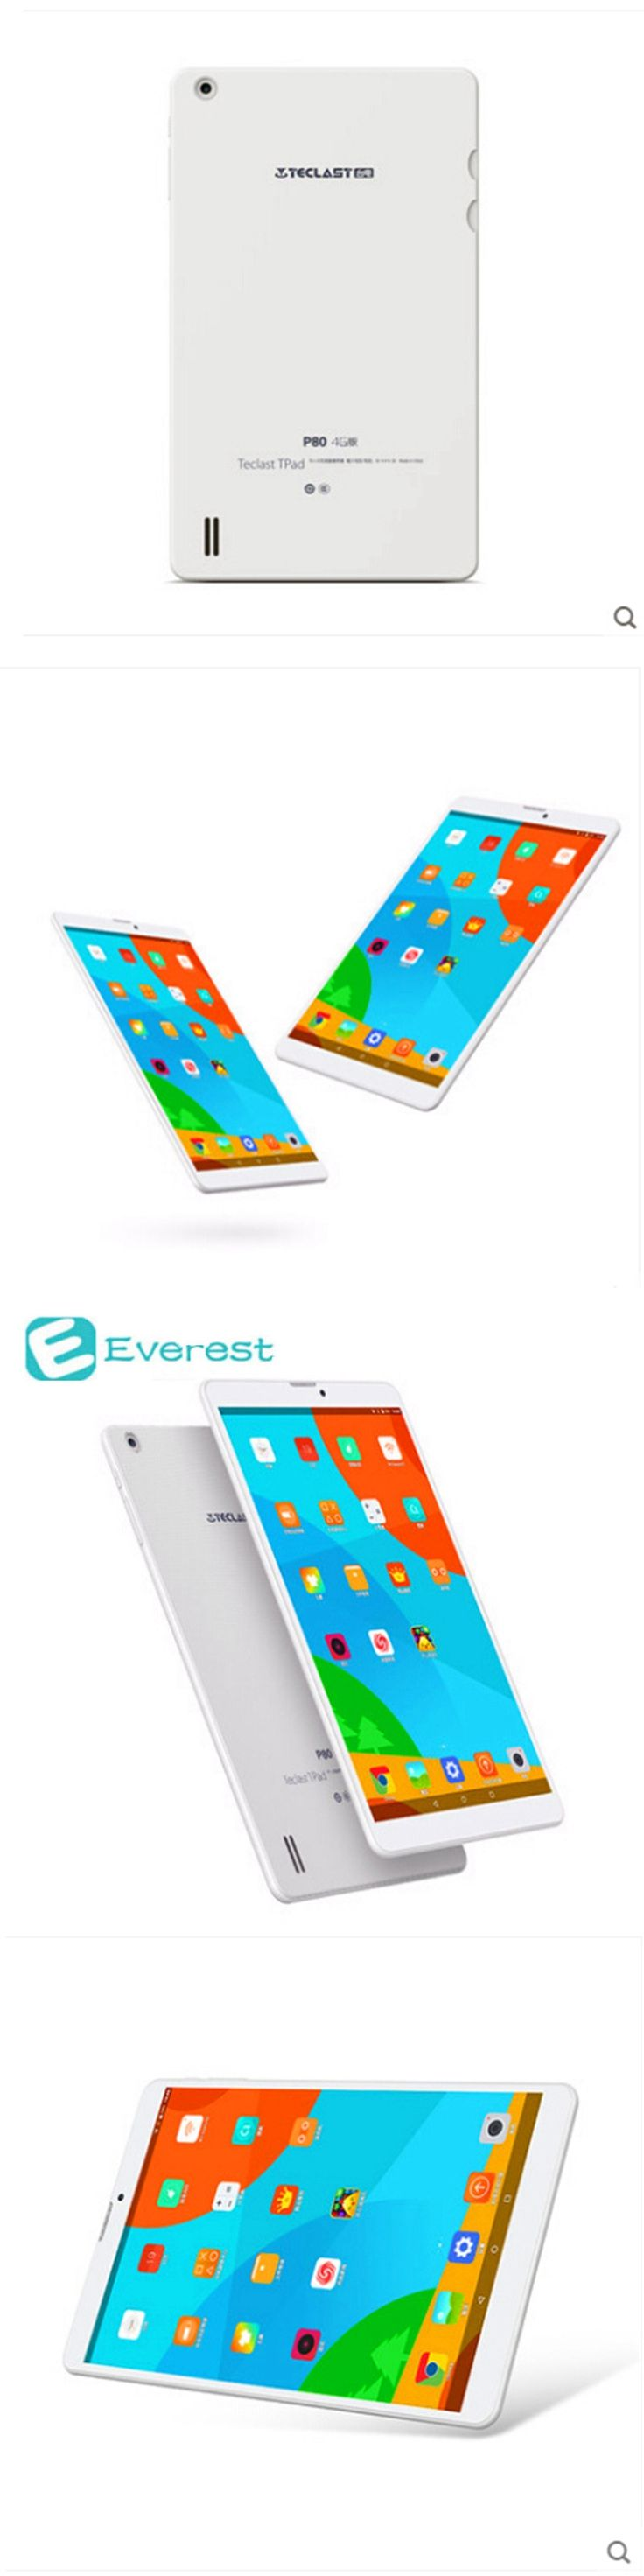 Teclast P80 4G Tablets MTK8735 Android 5.1 Quad Core Tablet PC Dual Wifi 2.4G/5G Bluetooth laptop GPS 8 inch tablet android